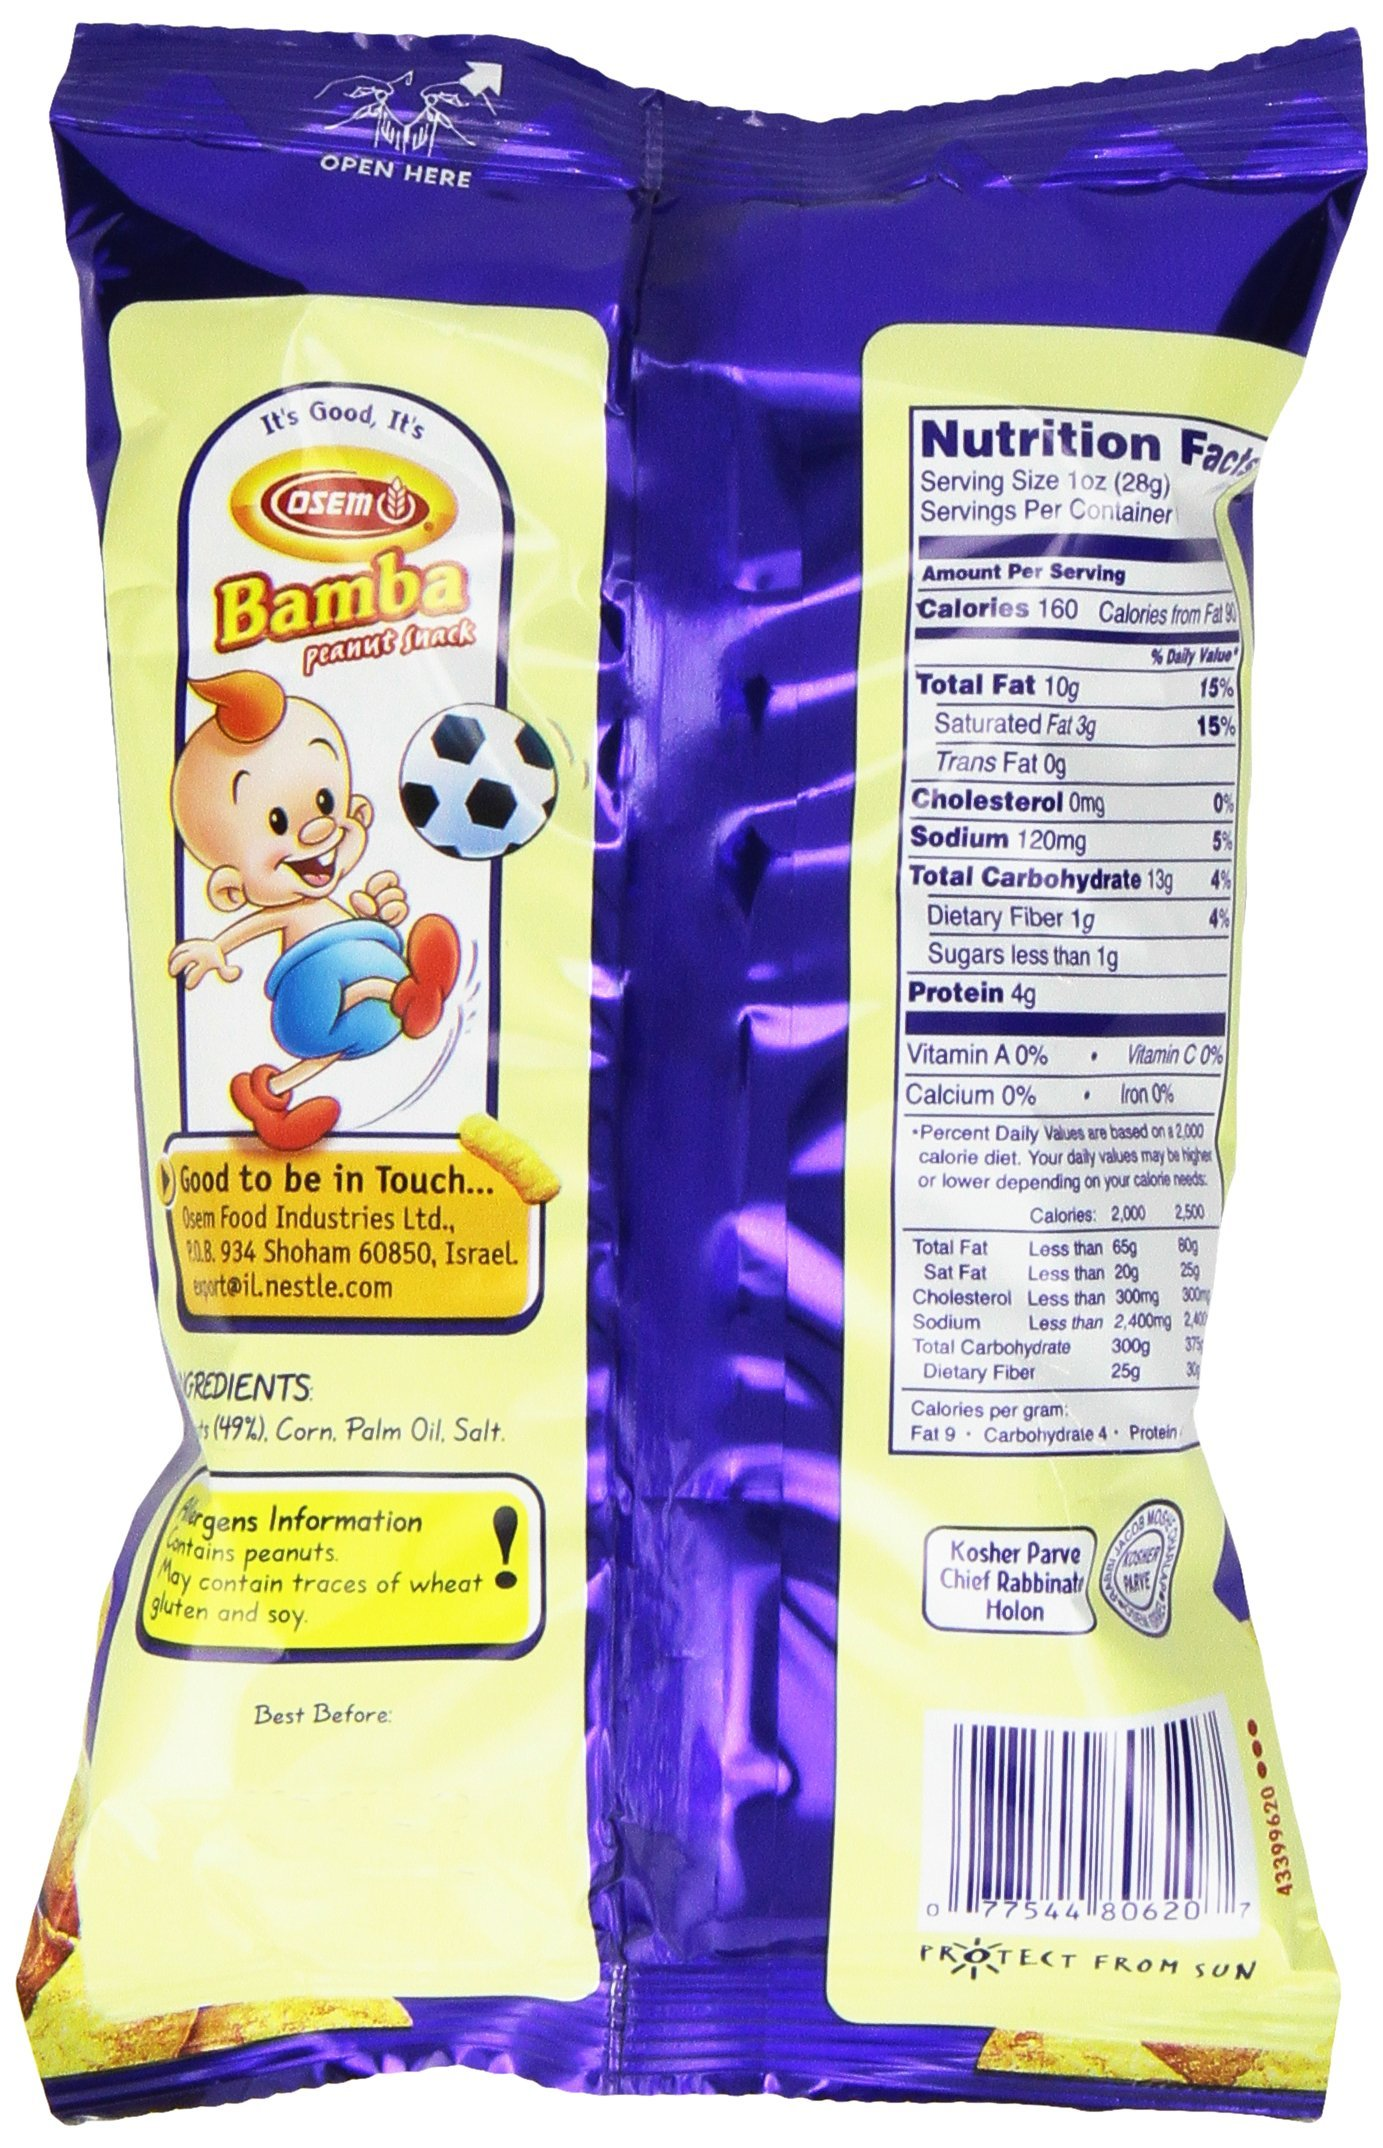 Bamba Peanut Butter Snacks All Natural Peanut Butter PB Corn Puffs, 1.0oz Bag (Pack of 1) by Osem (Image #4)